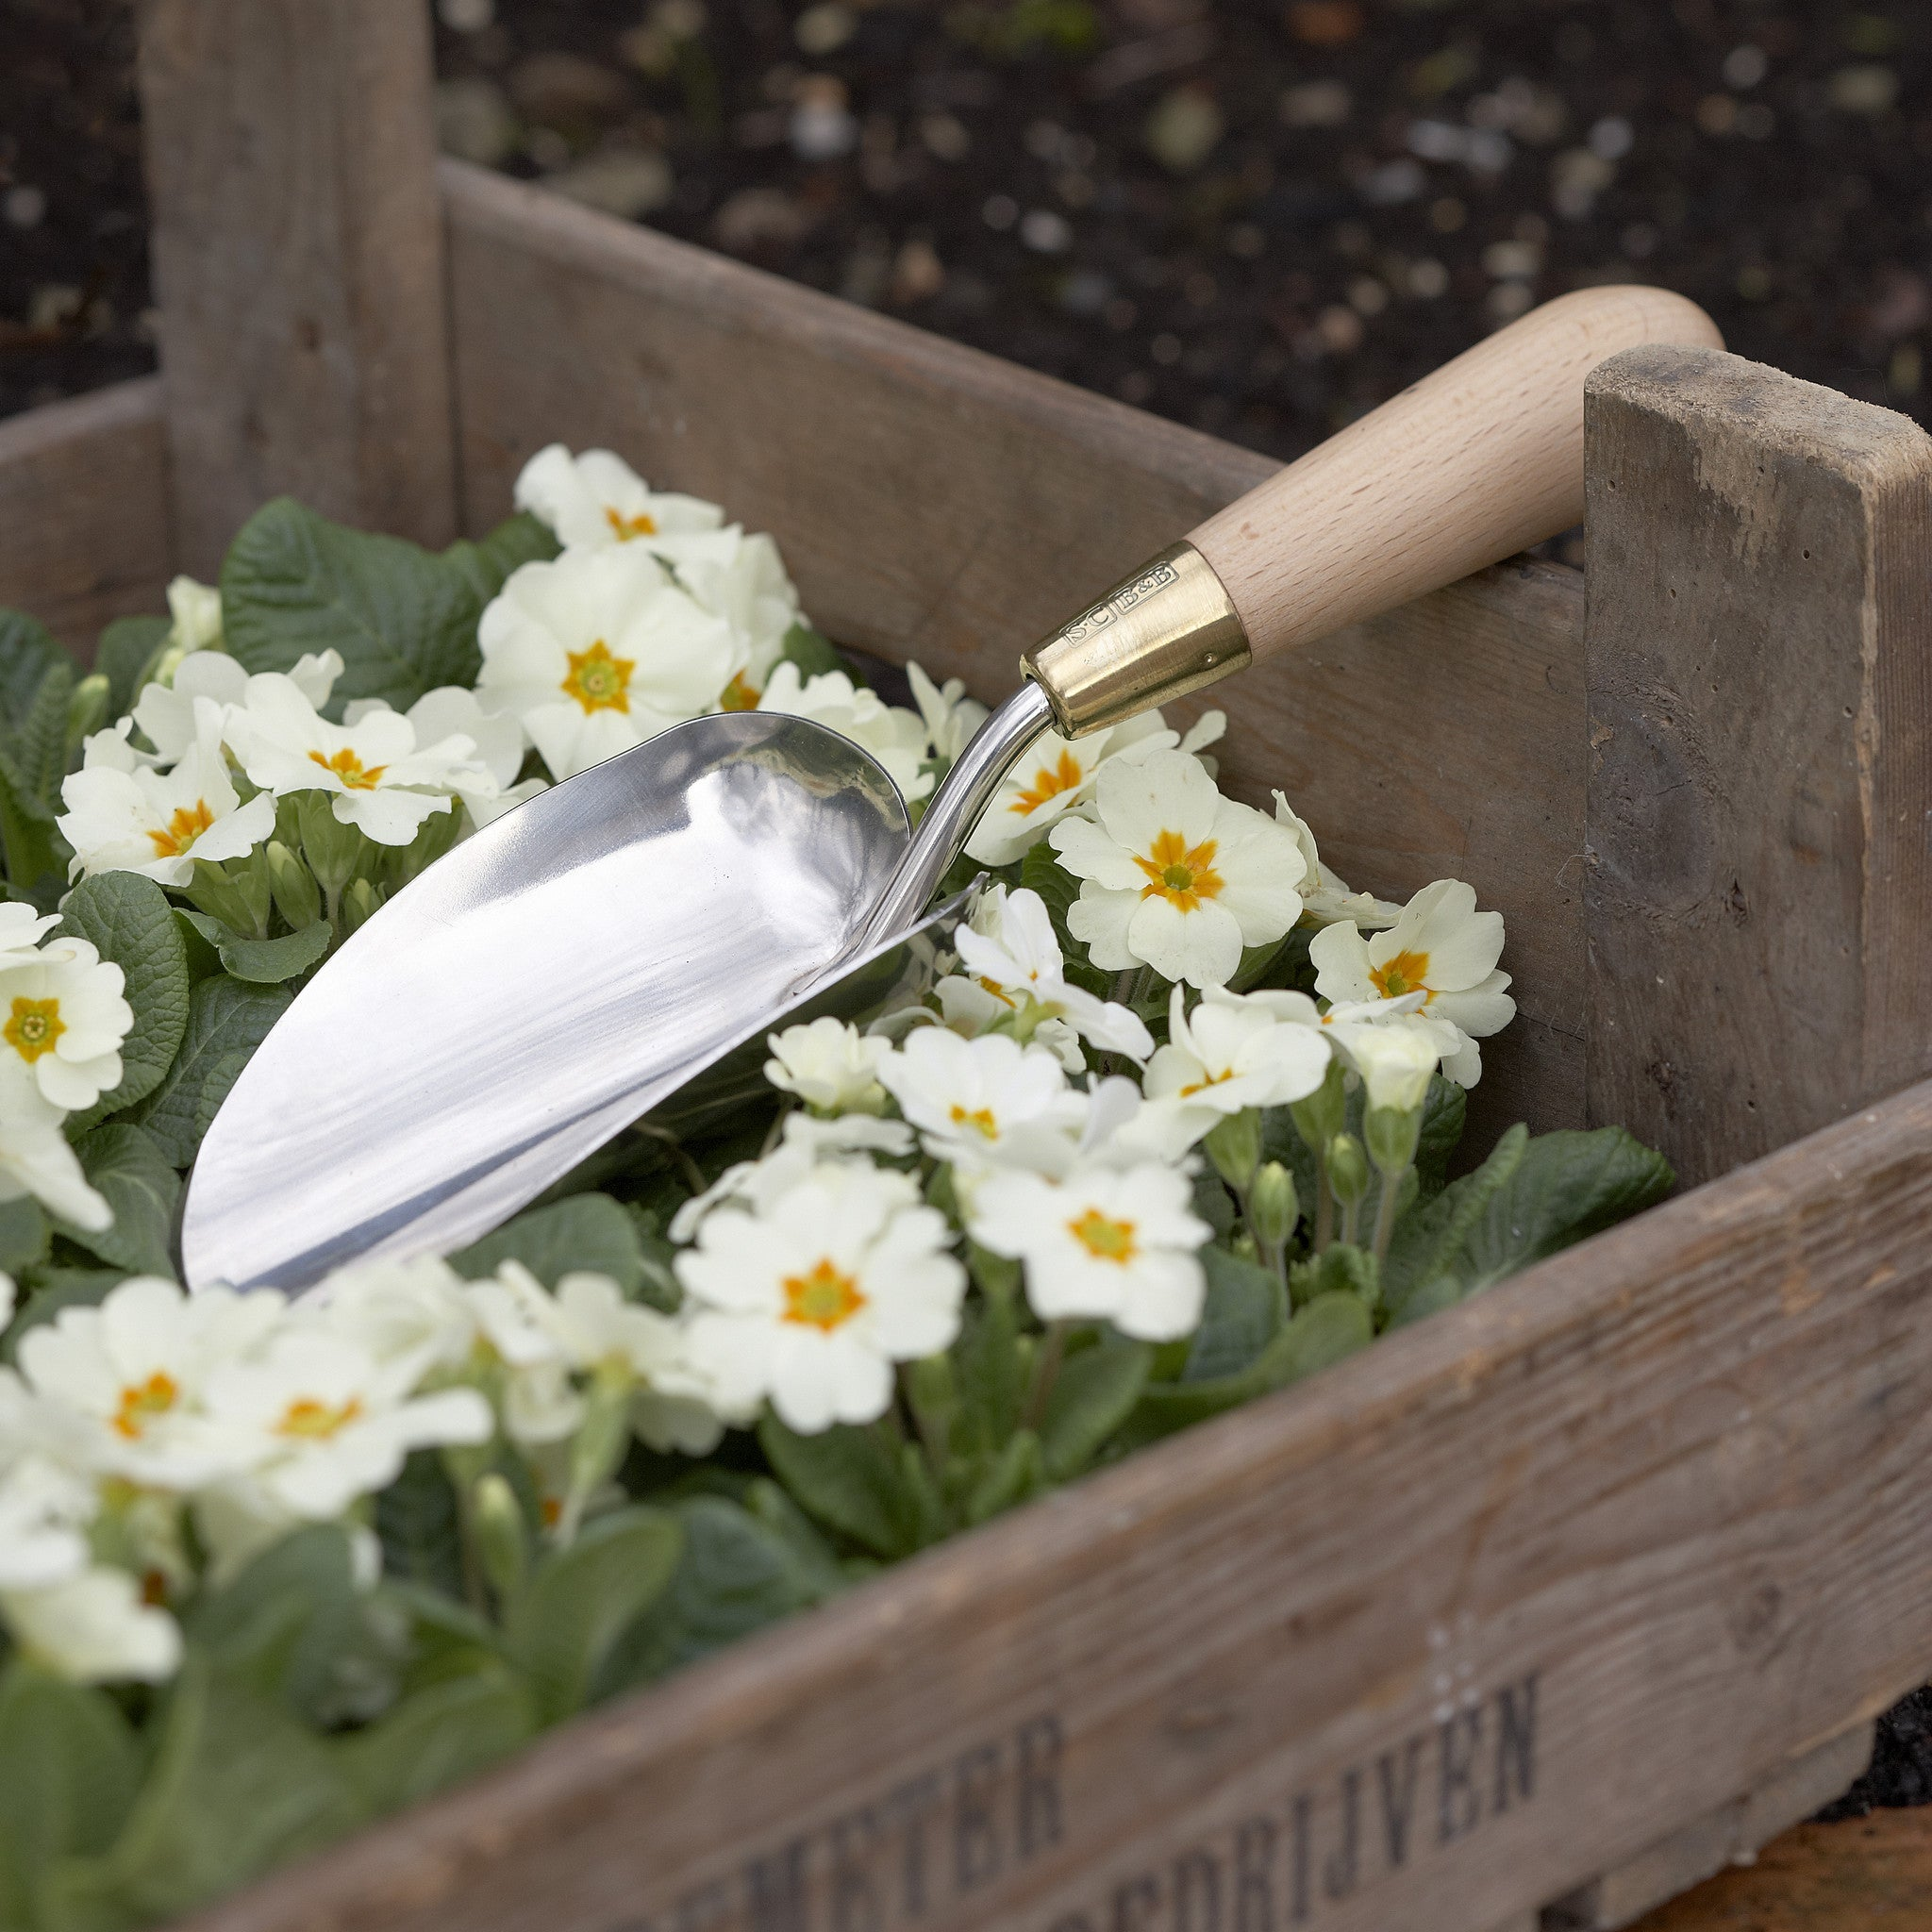 Trowel - Gift Boxed - Sophie Conran - The Potting Shed Garden Tools